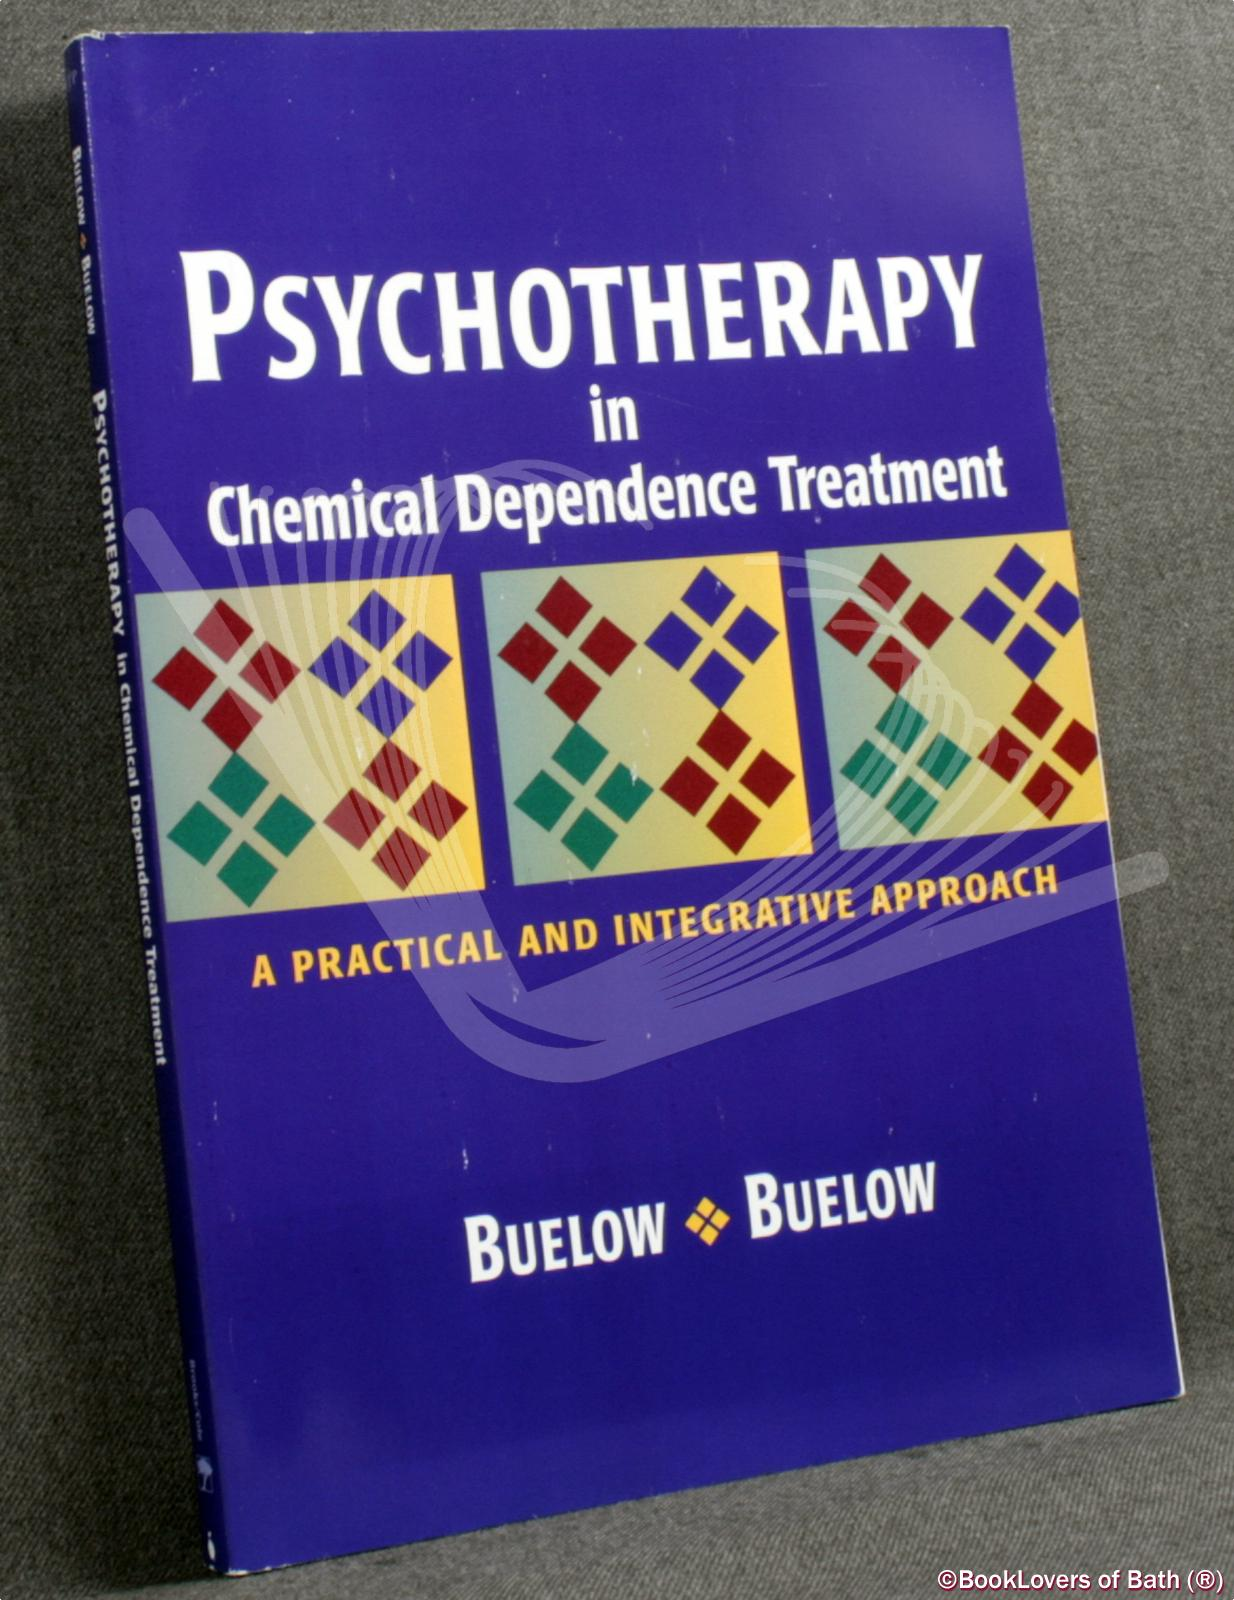 Psychotherapy in Chemical Dependence Treatment: A Practical and Integrative Approach - George D. Buelow & Sidne A. Buelow